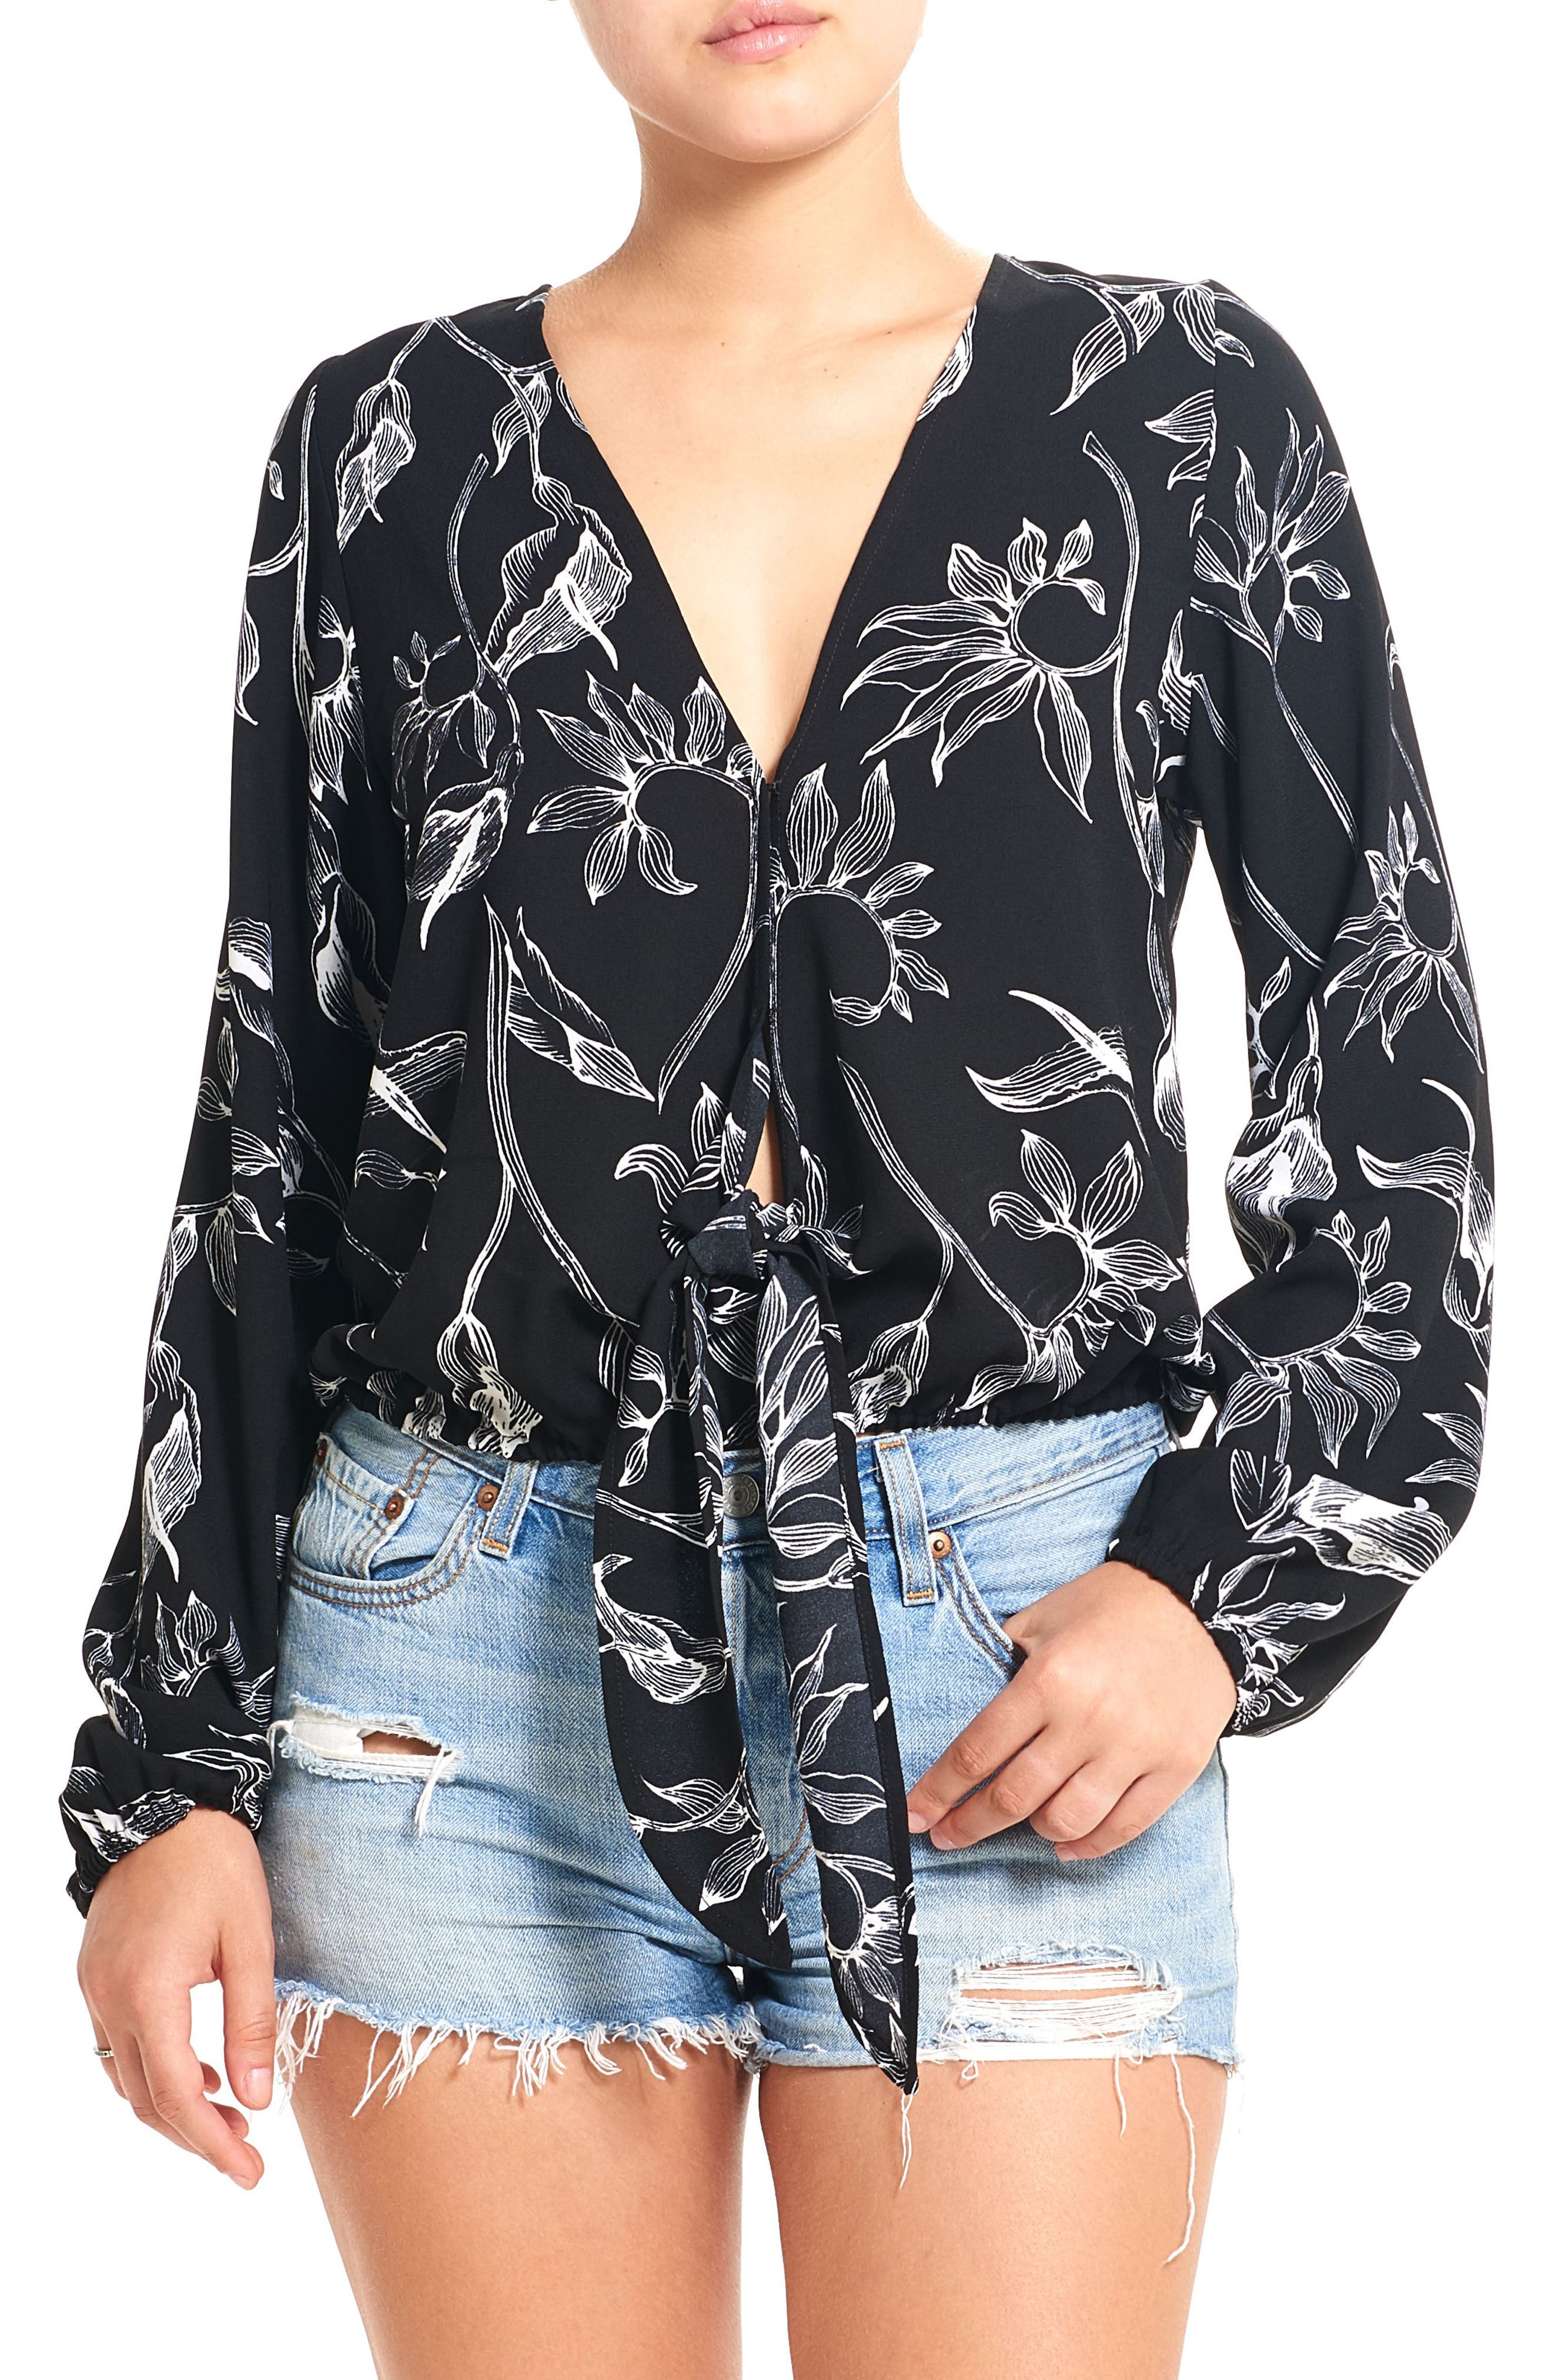 Main Image - Thieves Like Us Print Tie Front Top